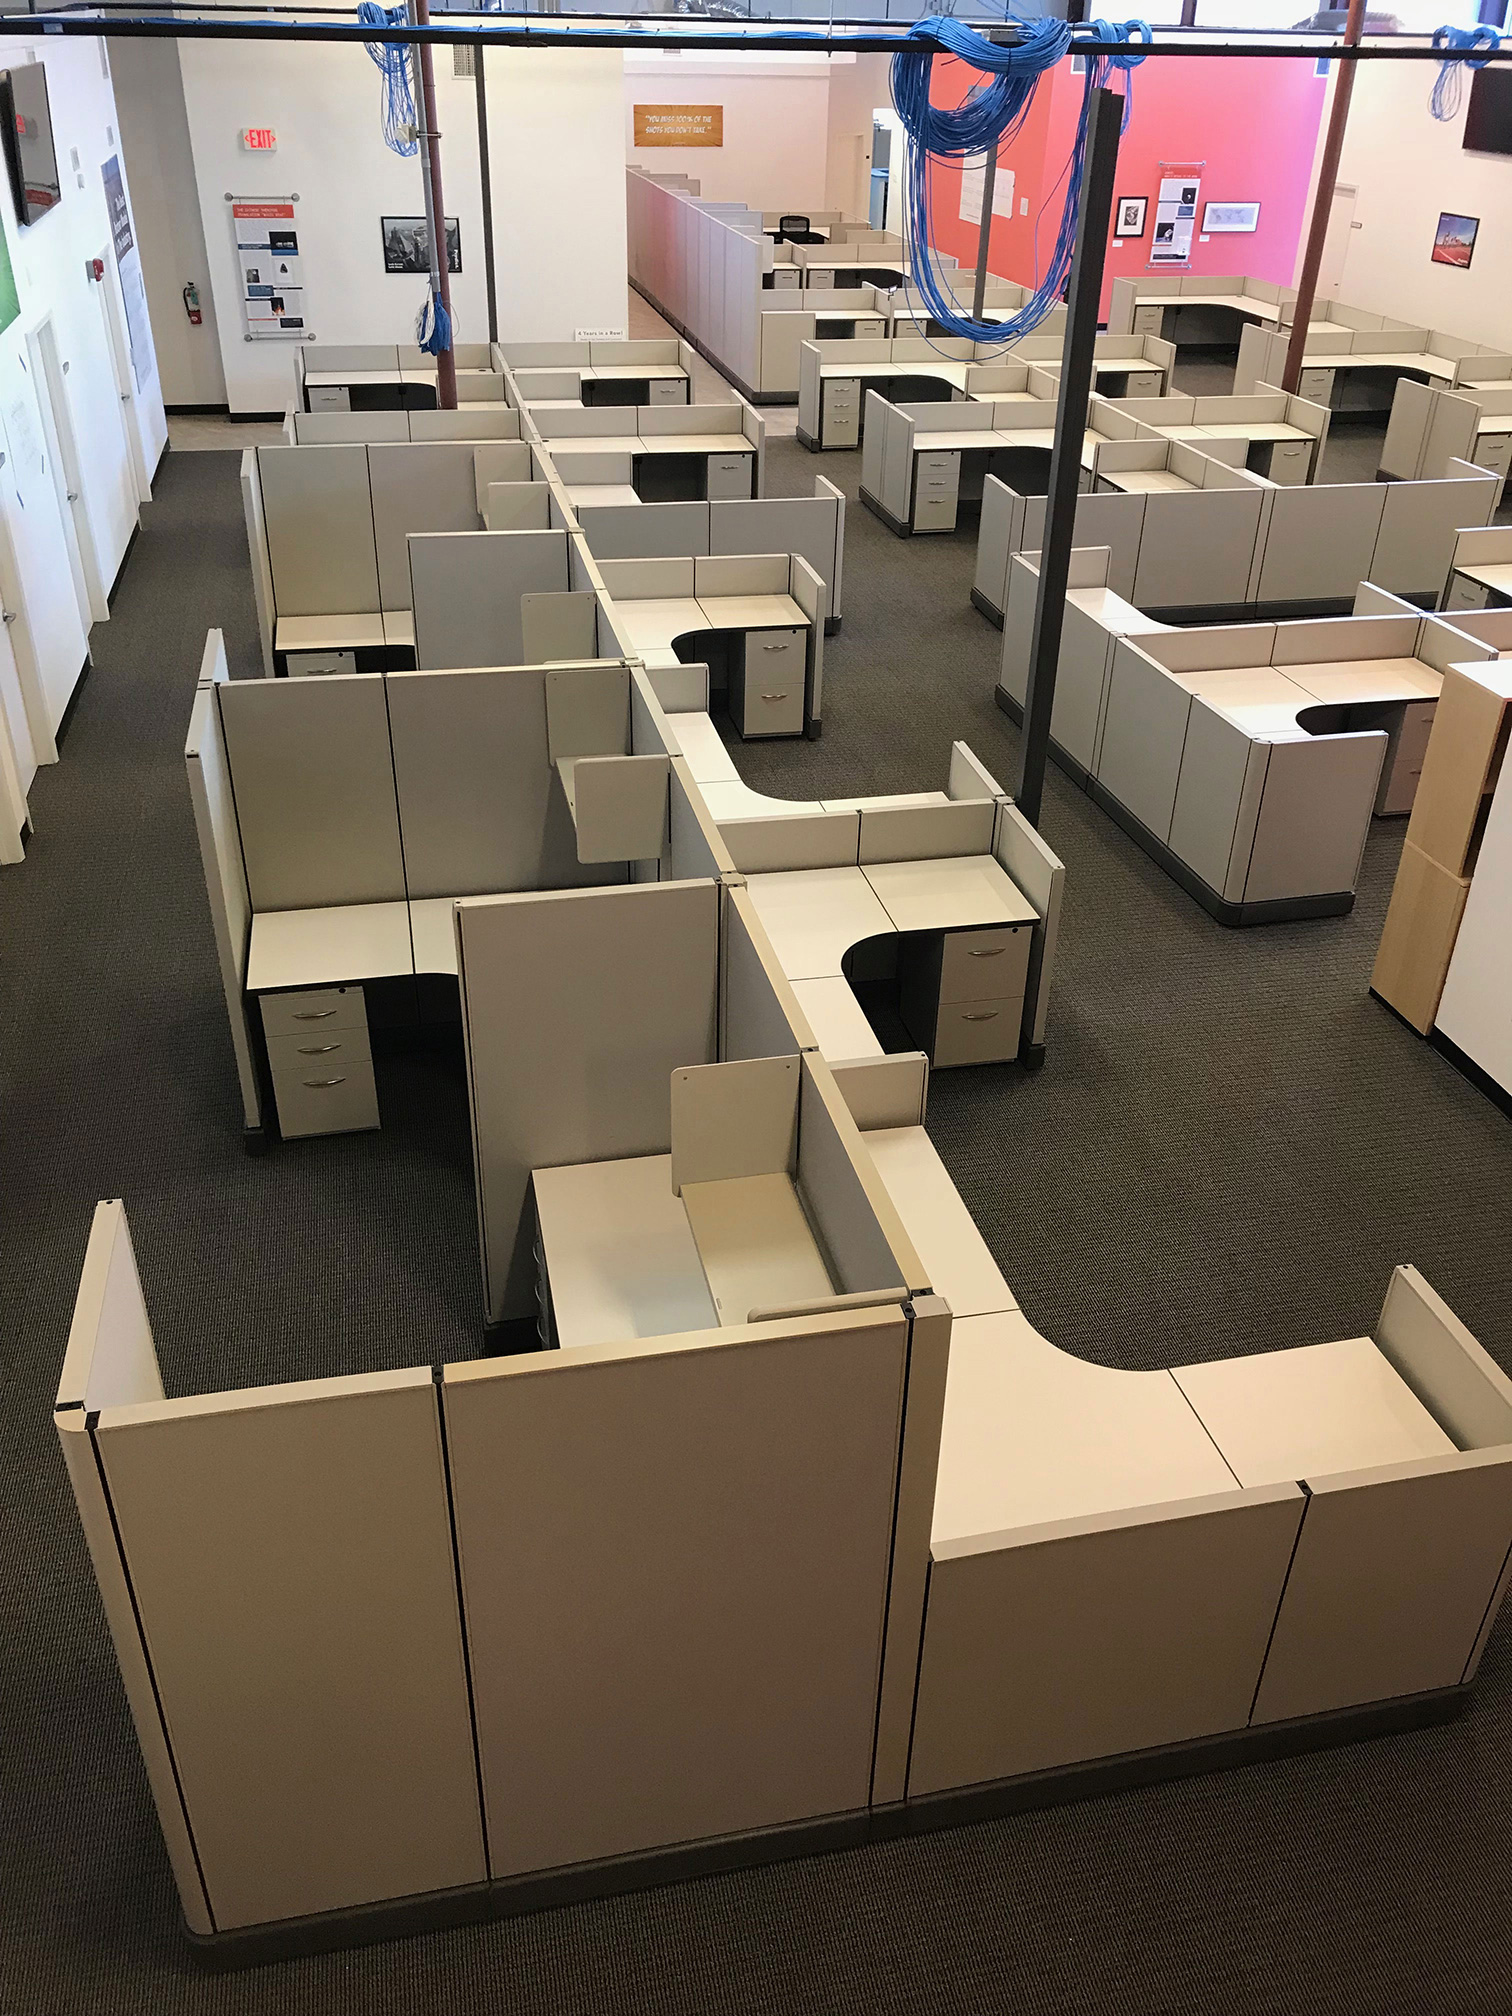 office-cubicles-for-sale-in-temple-terrace-florida-3.jpg